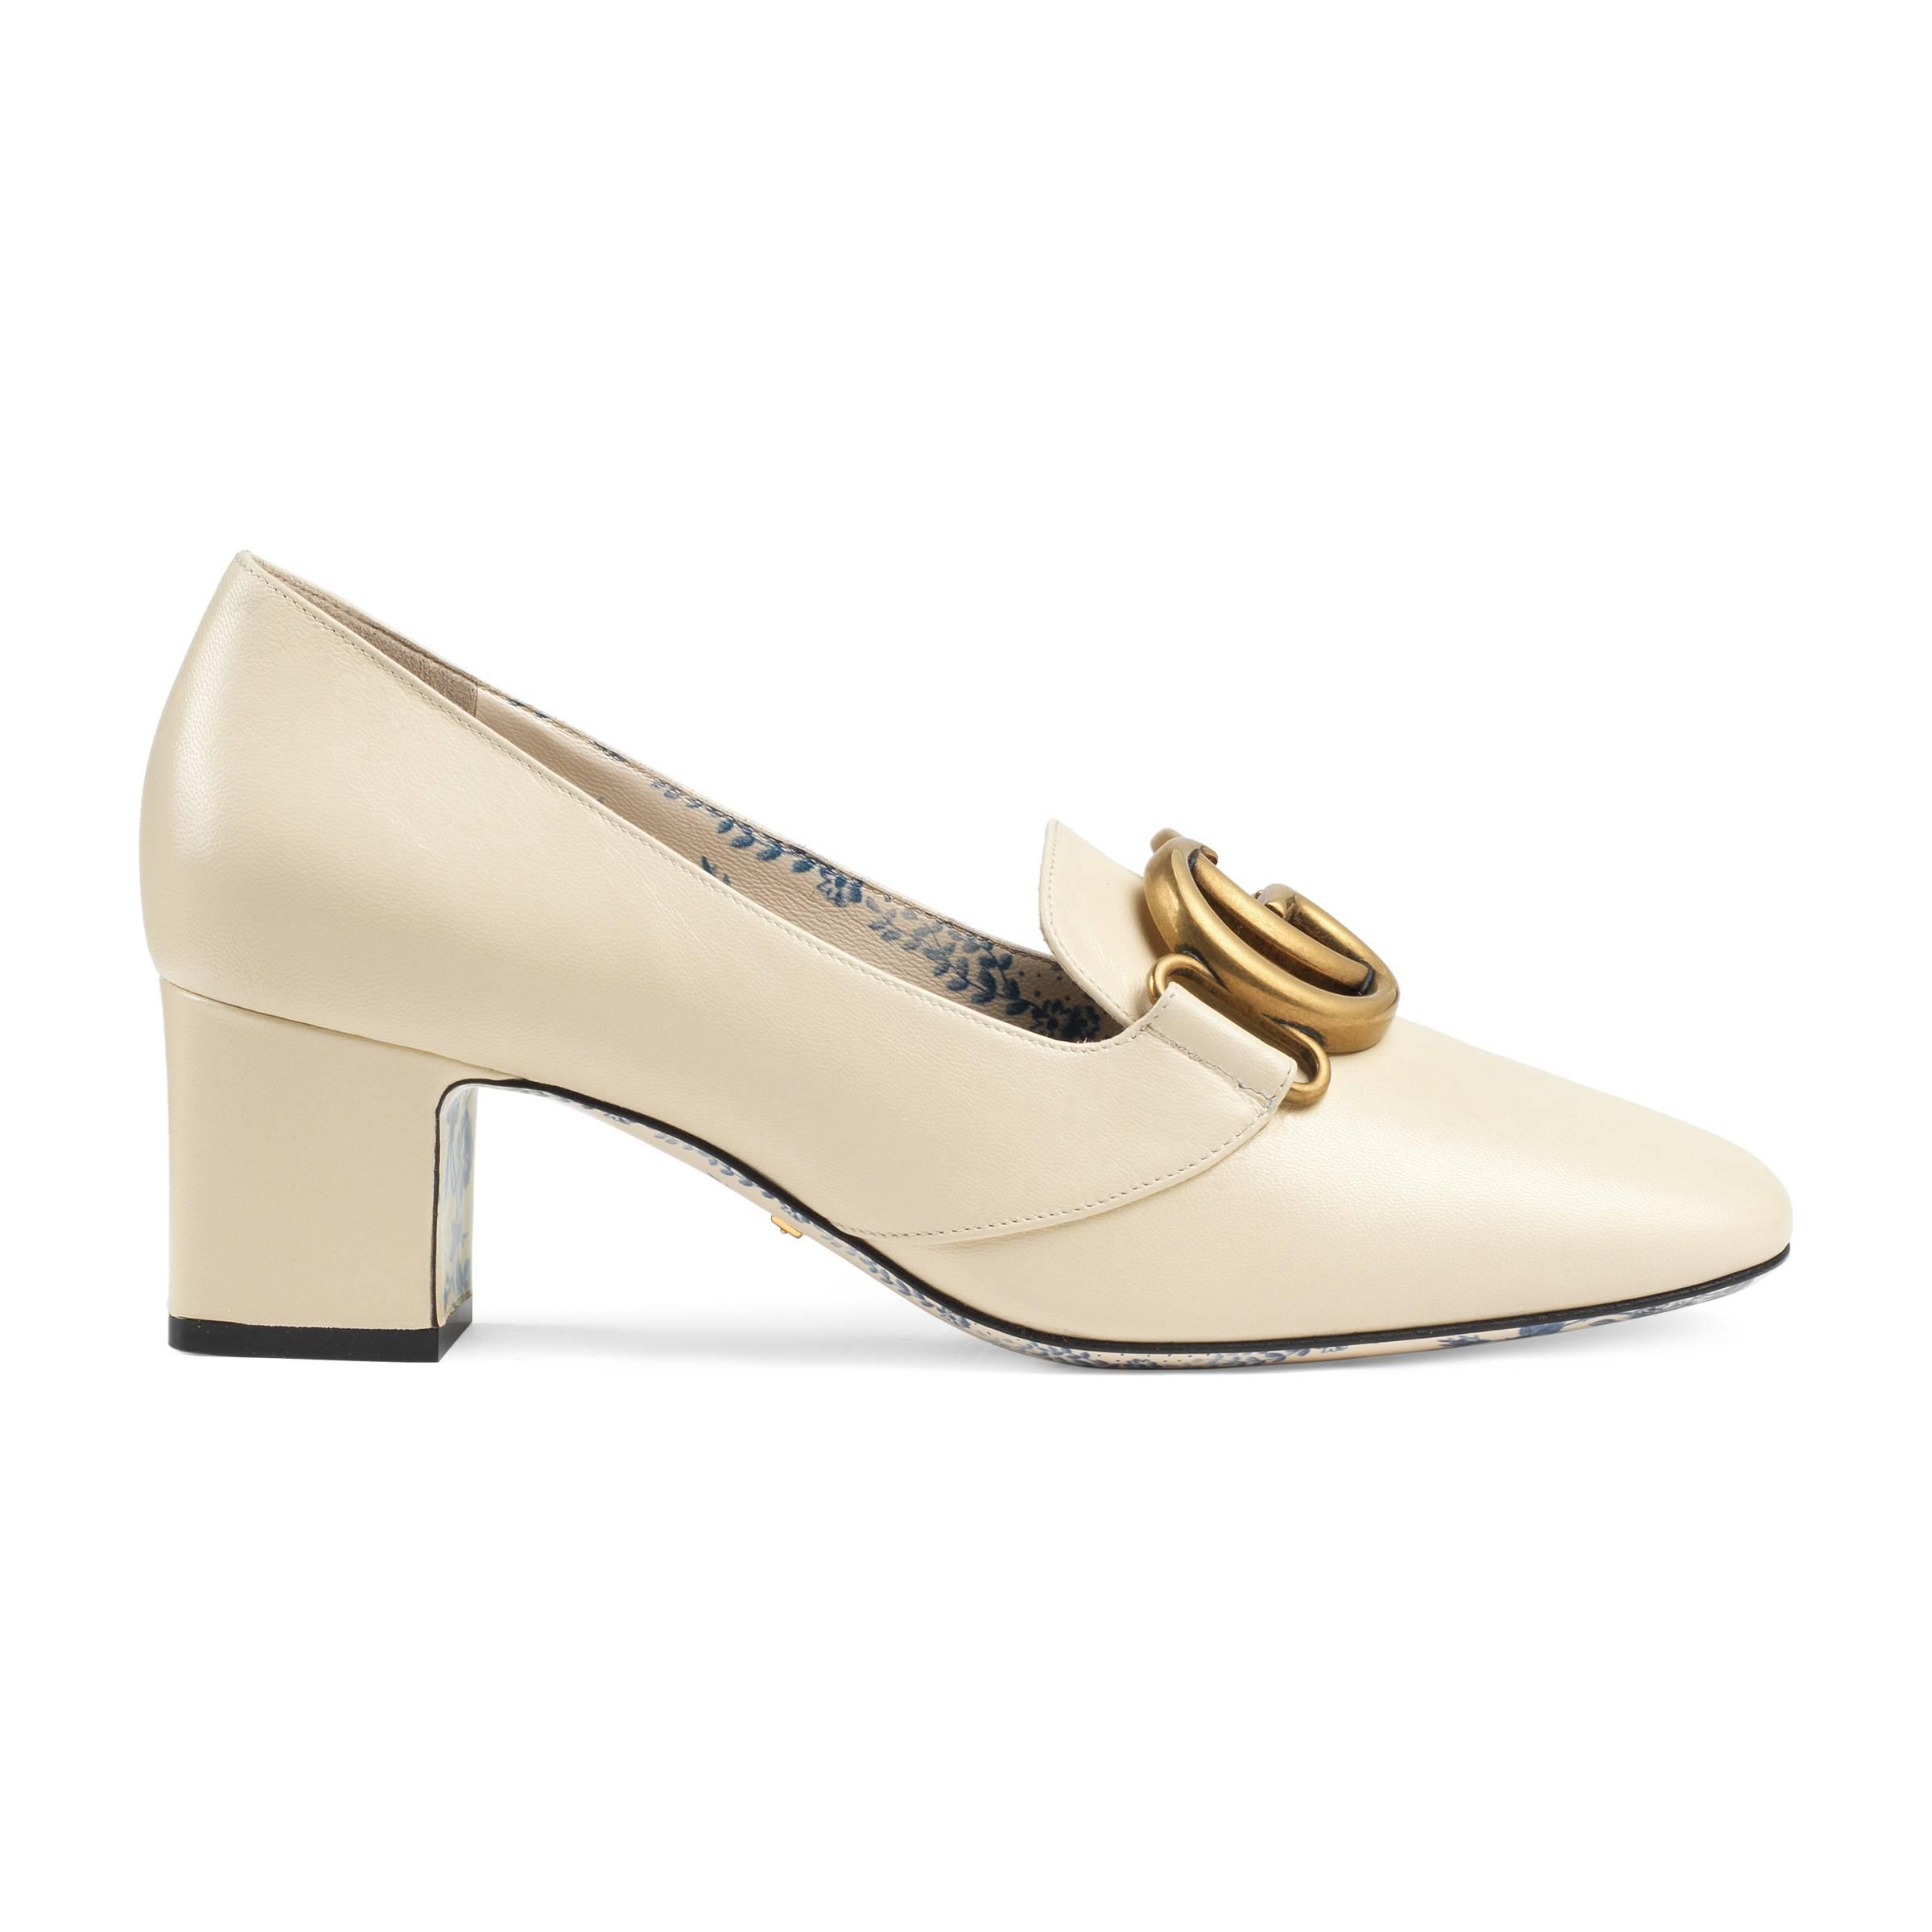 2f4f358f9779 Lyst - Gucci Leather Mid-heel Pump With Double G in White